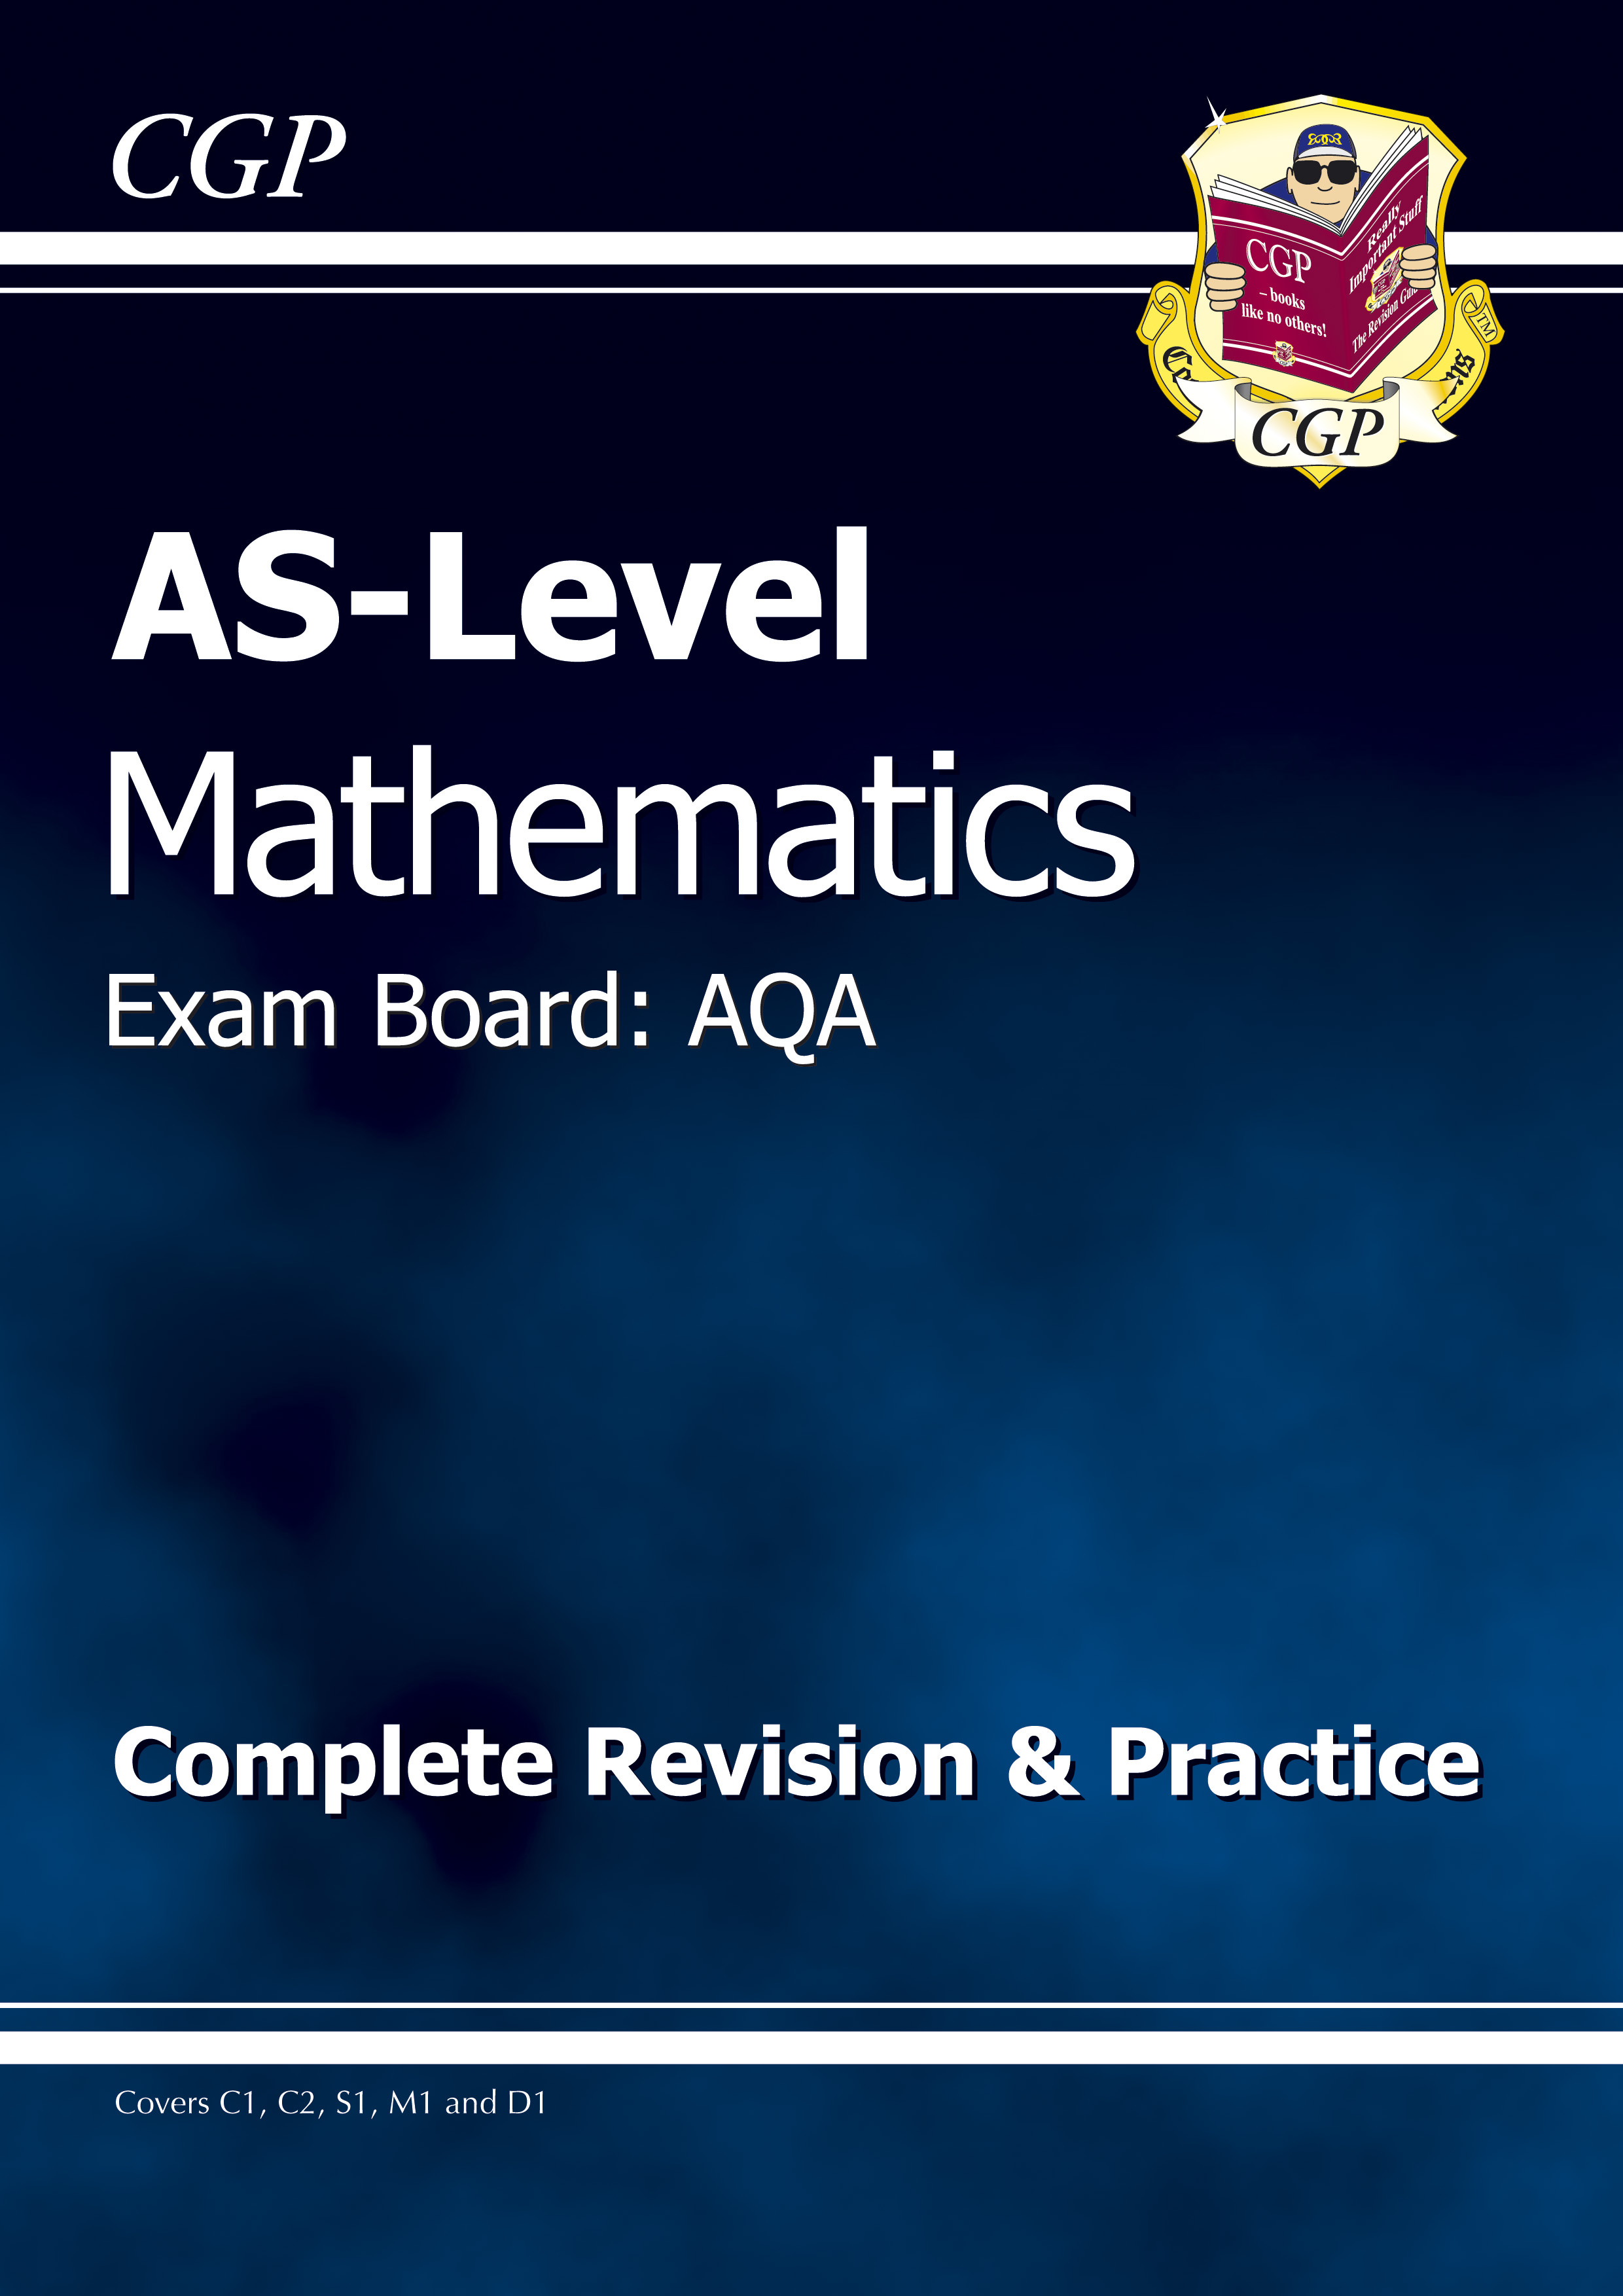 MAR51DK - AS-Level Maths AQA Complete Revision & Practice